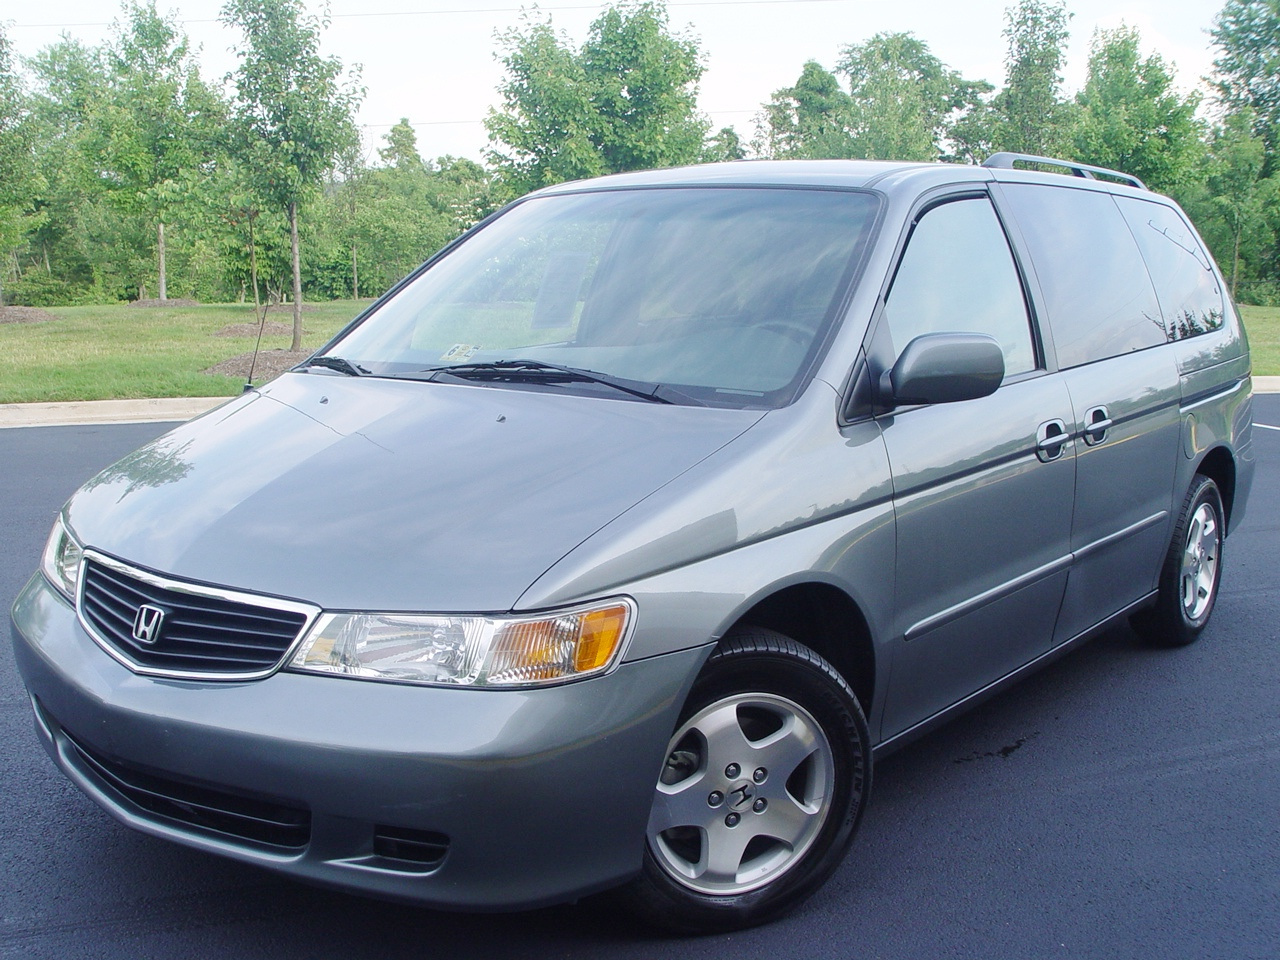 Picture of 2001 honda odyssey ex exterior gallery_worthy